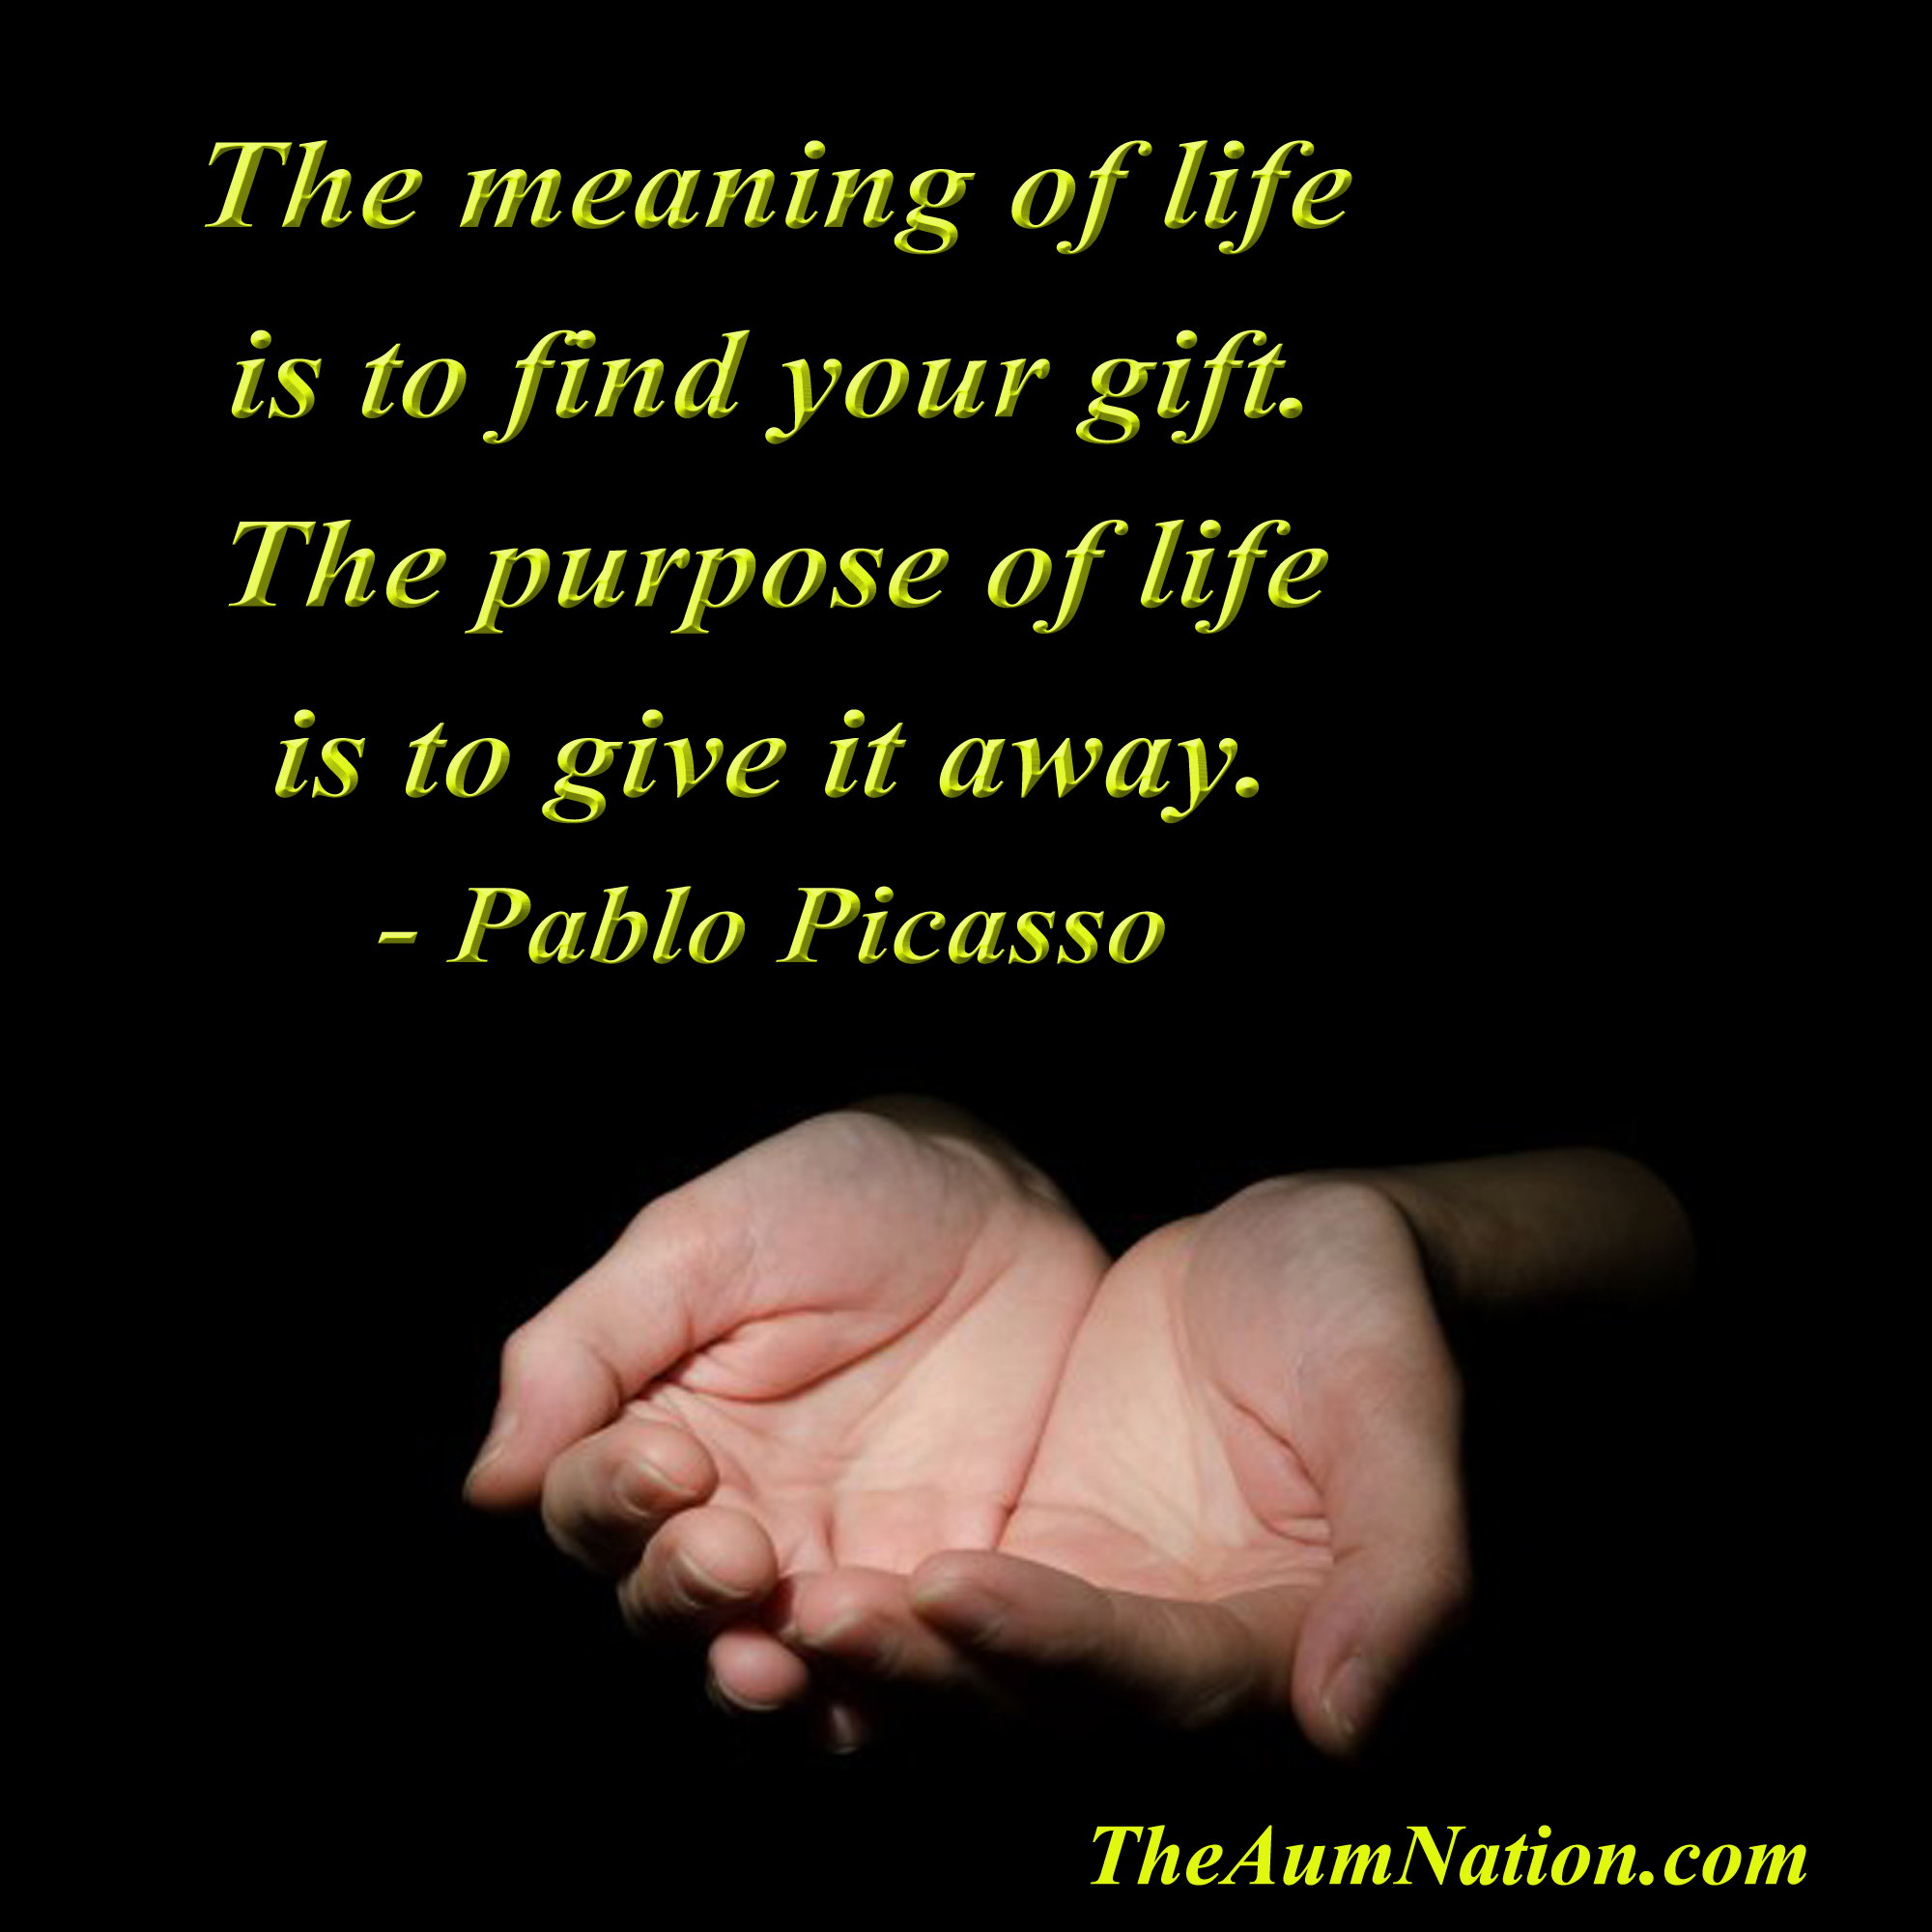 Quotes About The Purpose Of Life The Meaning Of Life Is To Find Your Giftthe Purpose Of Life Is